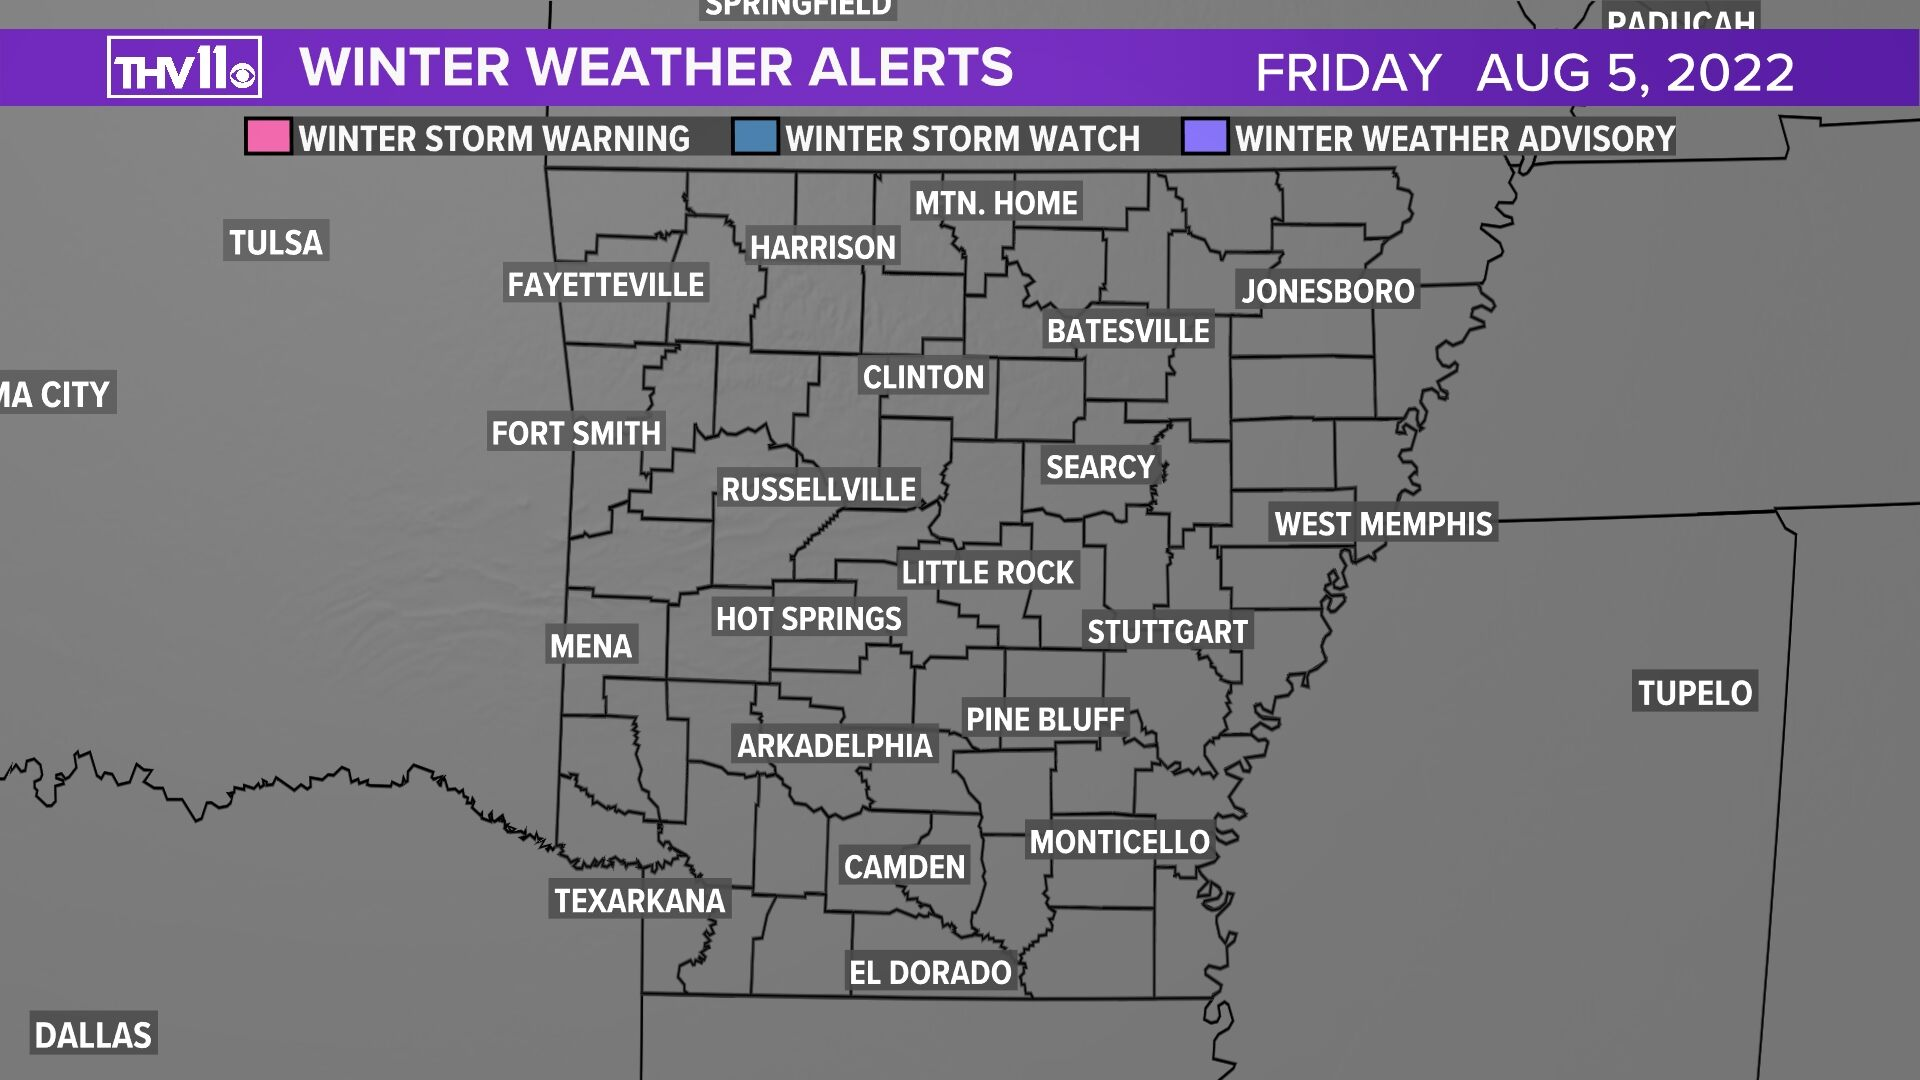 Winter Weather Watches and Warnings